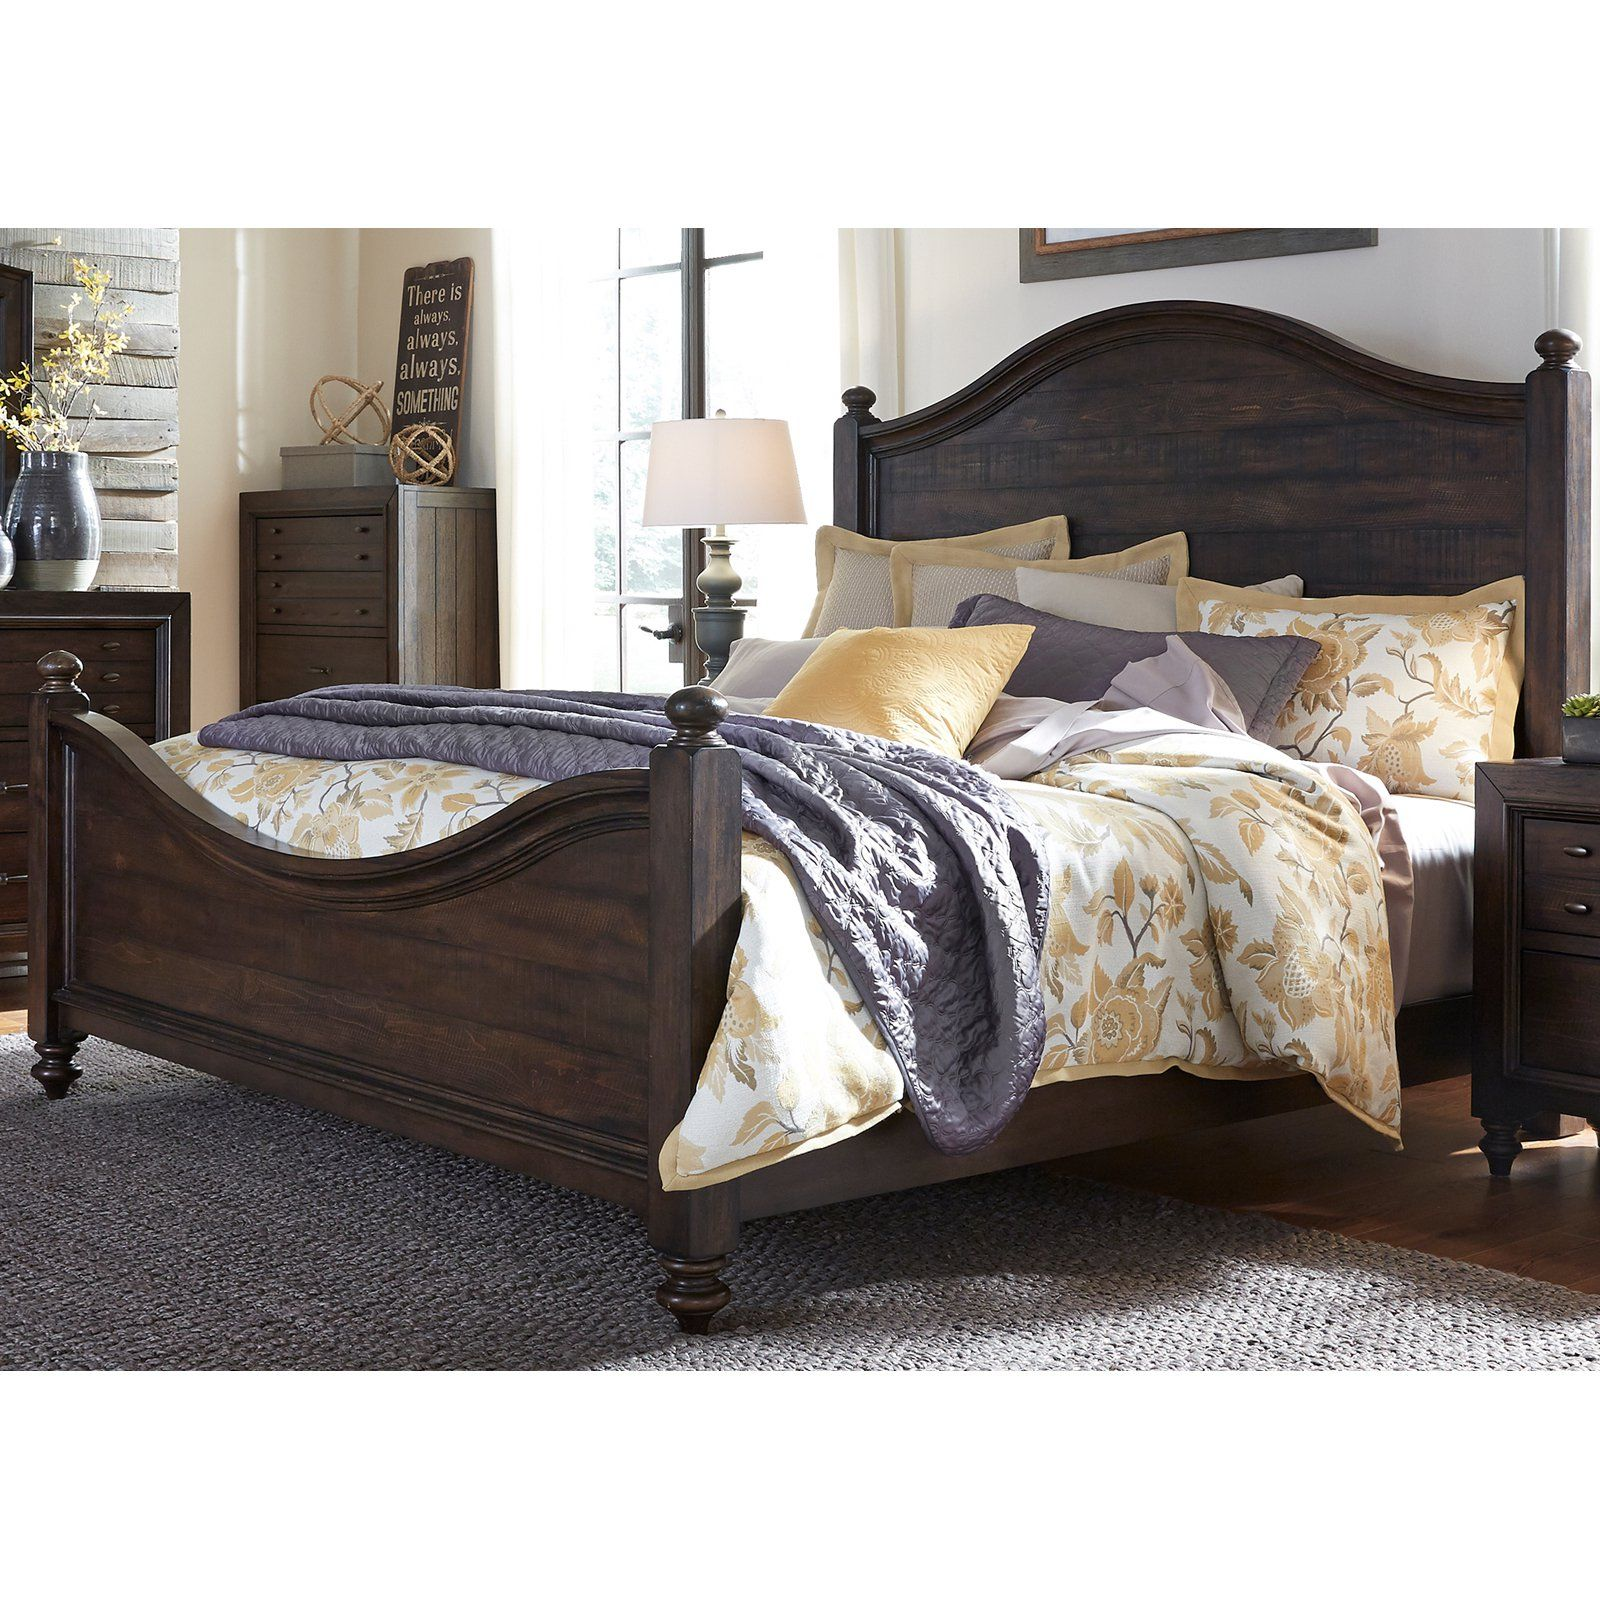 565967e8a8f38 Liberty Furniture Industries Catawba Hills Panel Bed in 2019 ...